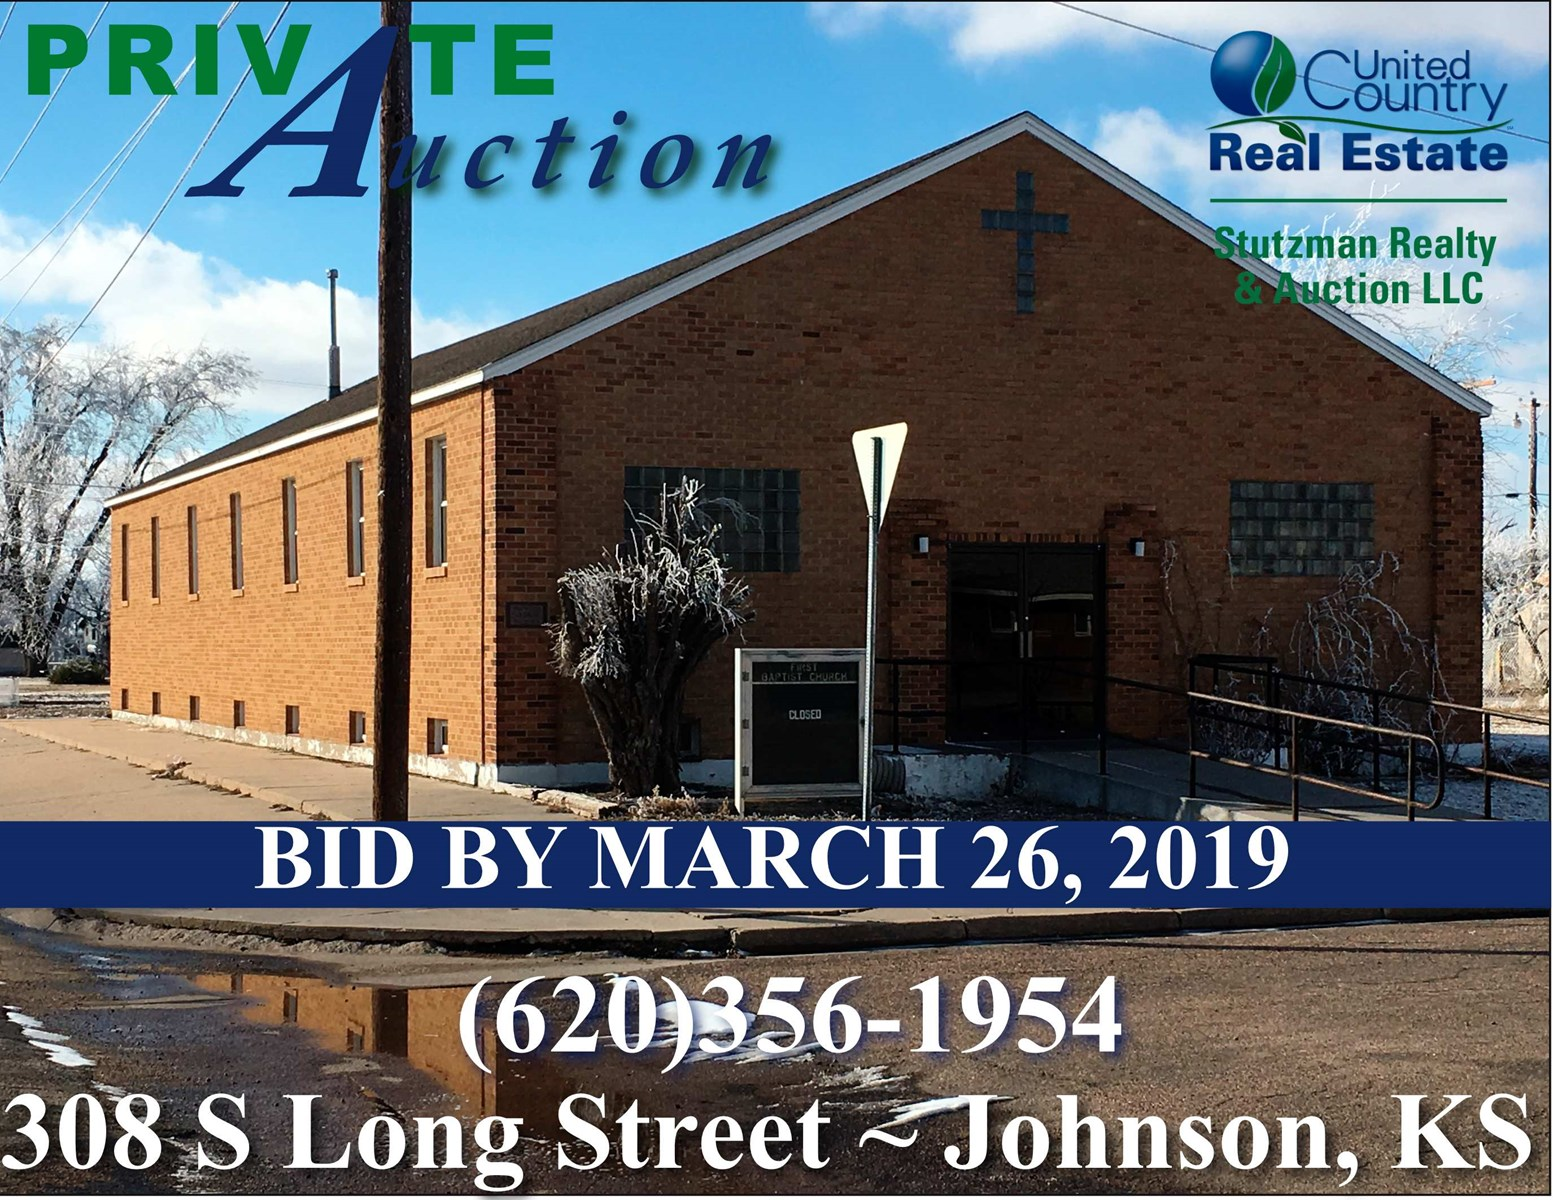 PRIVATE AUCTION - 308 S LONG, JOHNSON, KANSAS